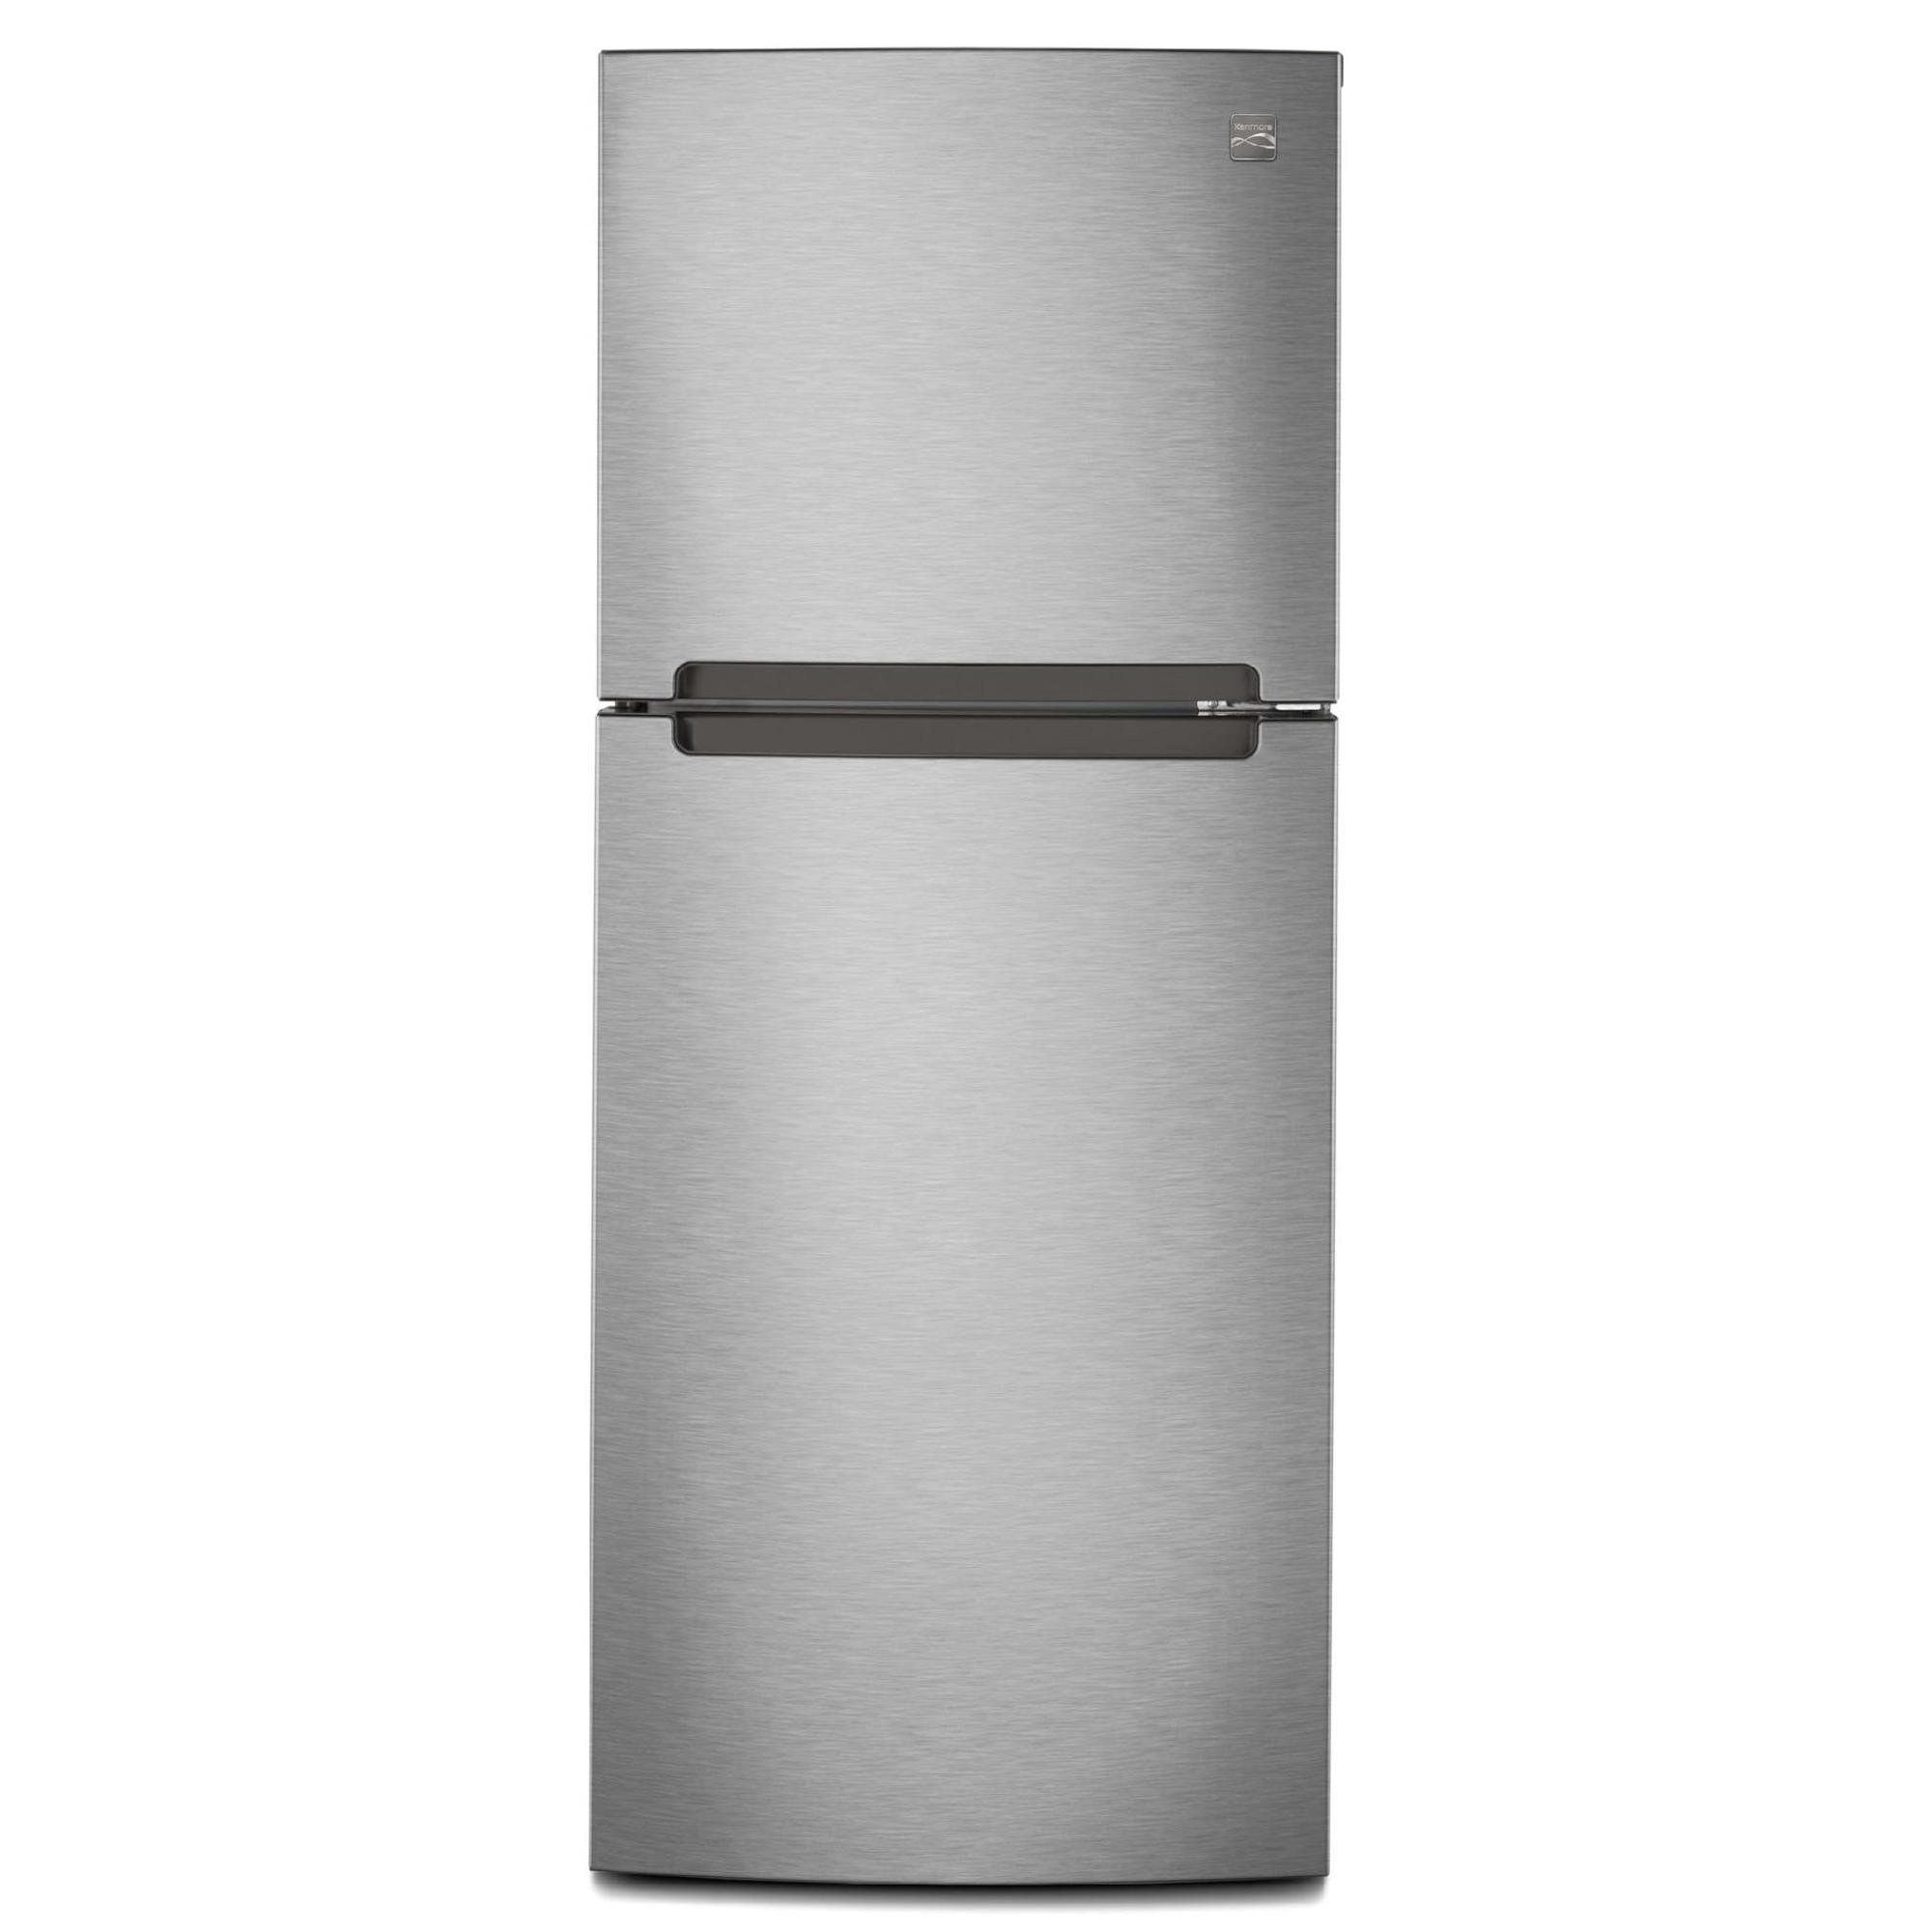 Kenmore 76393 76393 10 7 Cu Ft Top Freezer Refrigerator W Humidity Controlled Crisper Stainless In 2020 Refrigerator Top Freezer Refrigerator Compact Fridge